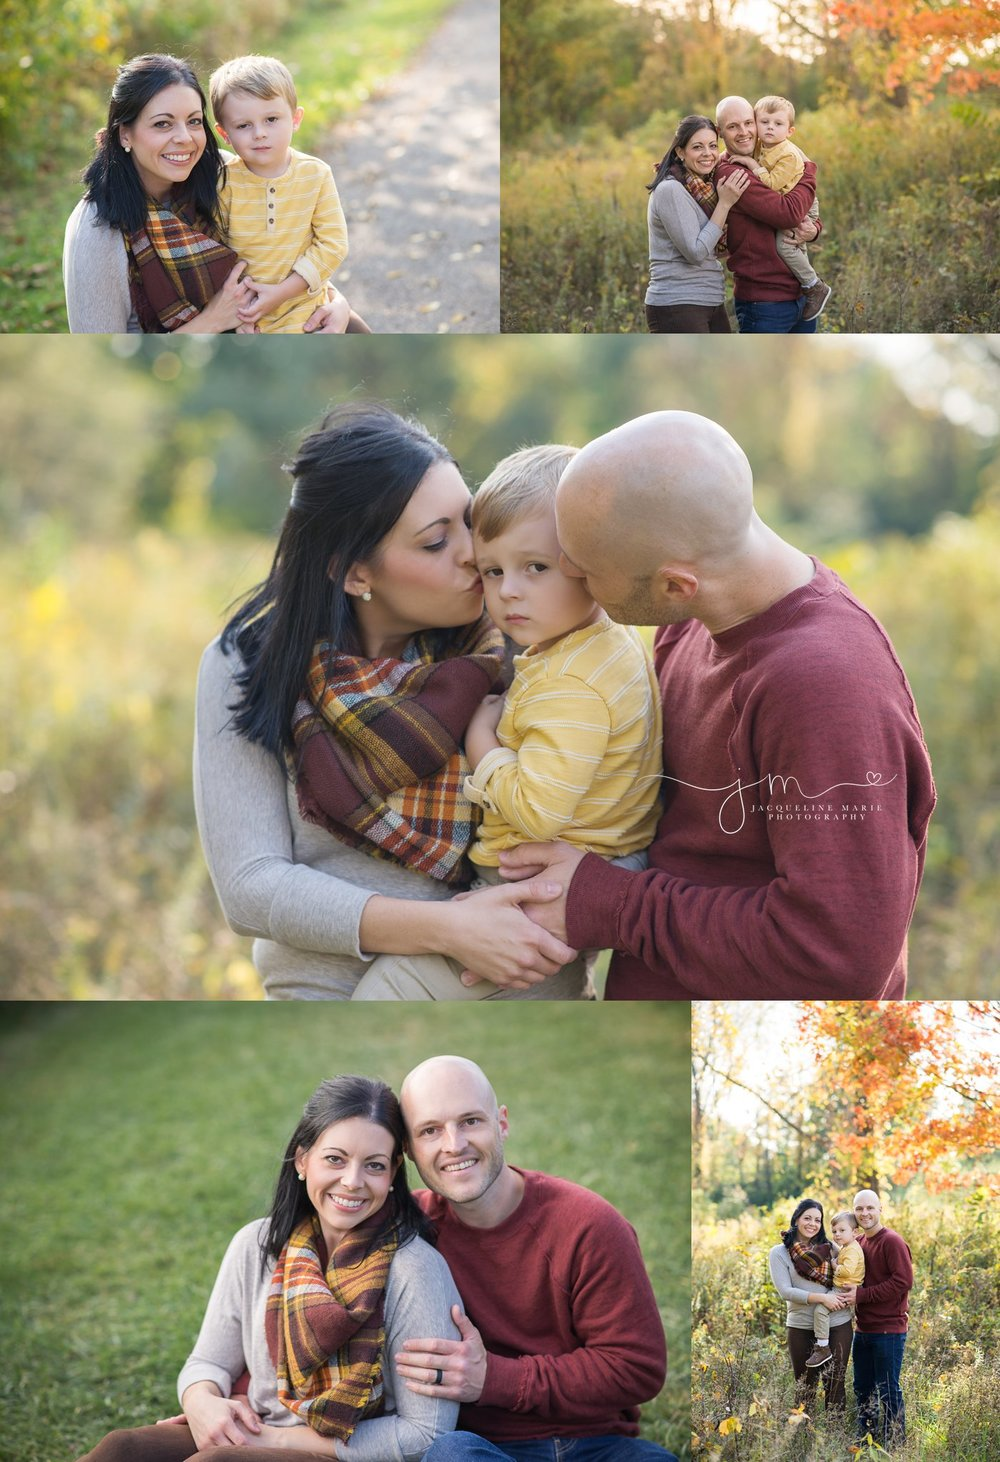 Fall-family-session-of-mother-father-and-child-at-beautiful-Sharon-Woods-Park-Columbus-Ohio-photographed-by-JacquelineMariePhotography